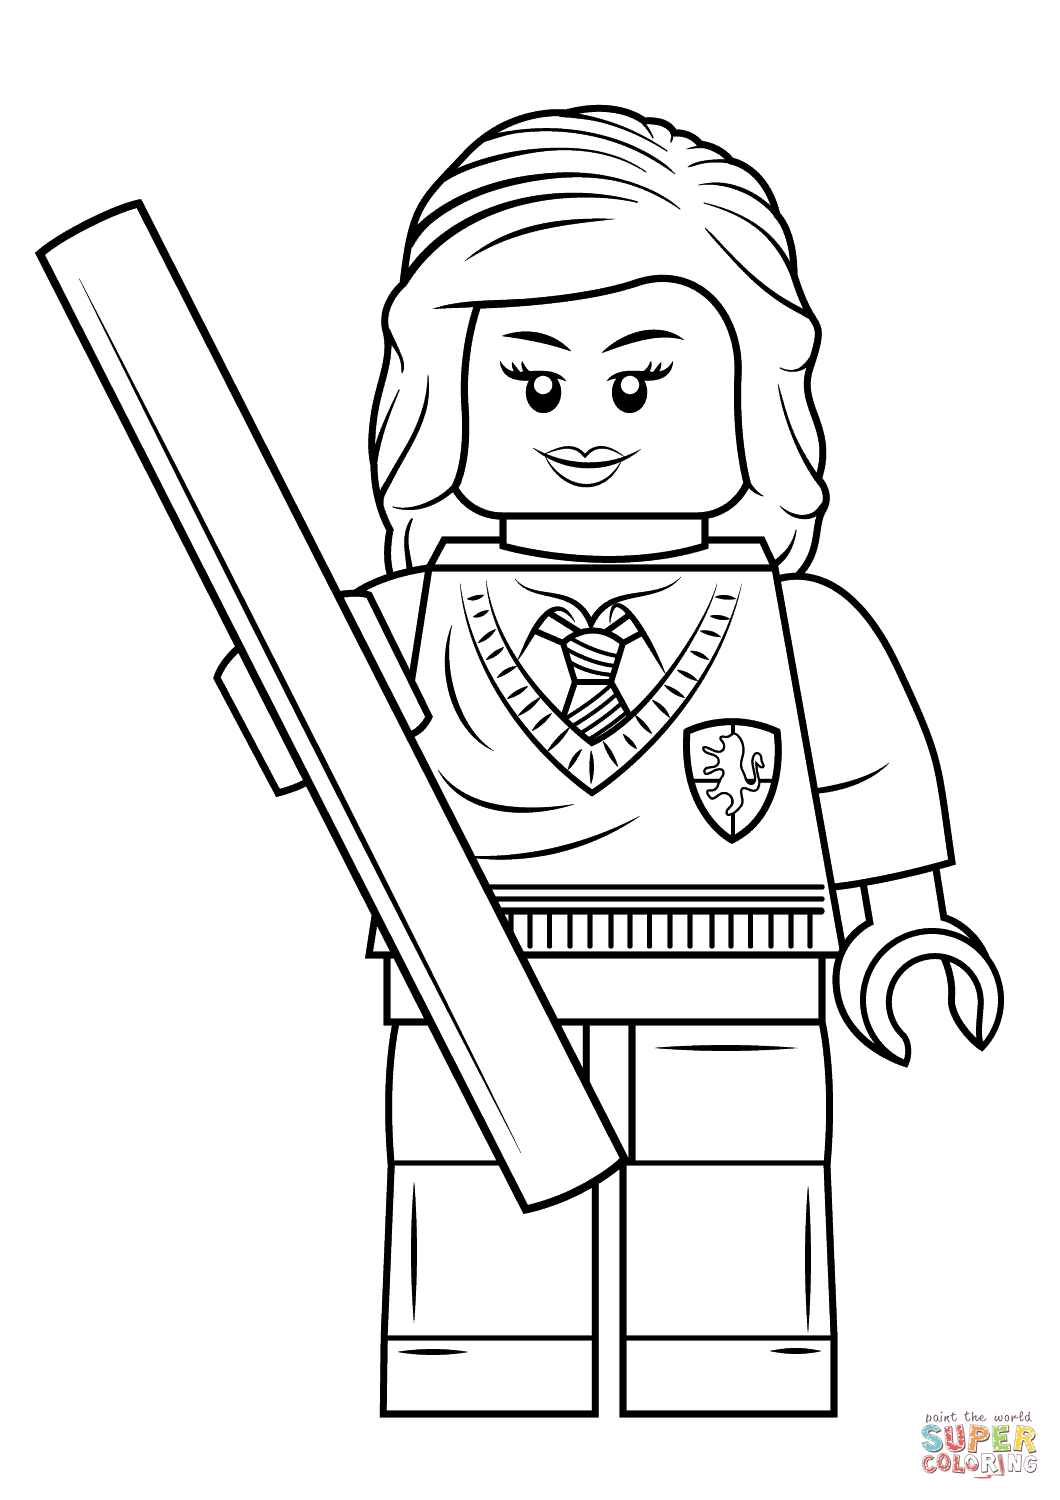 Lego Hermione Granger Coloring Page